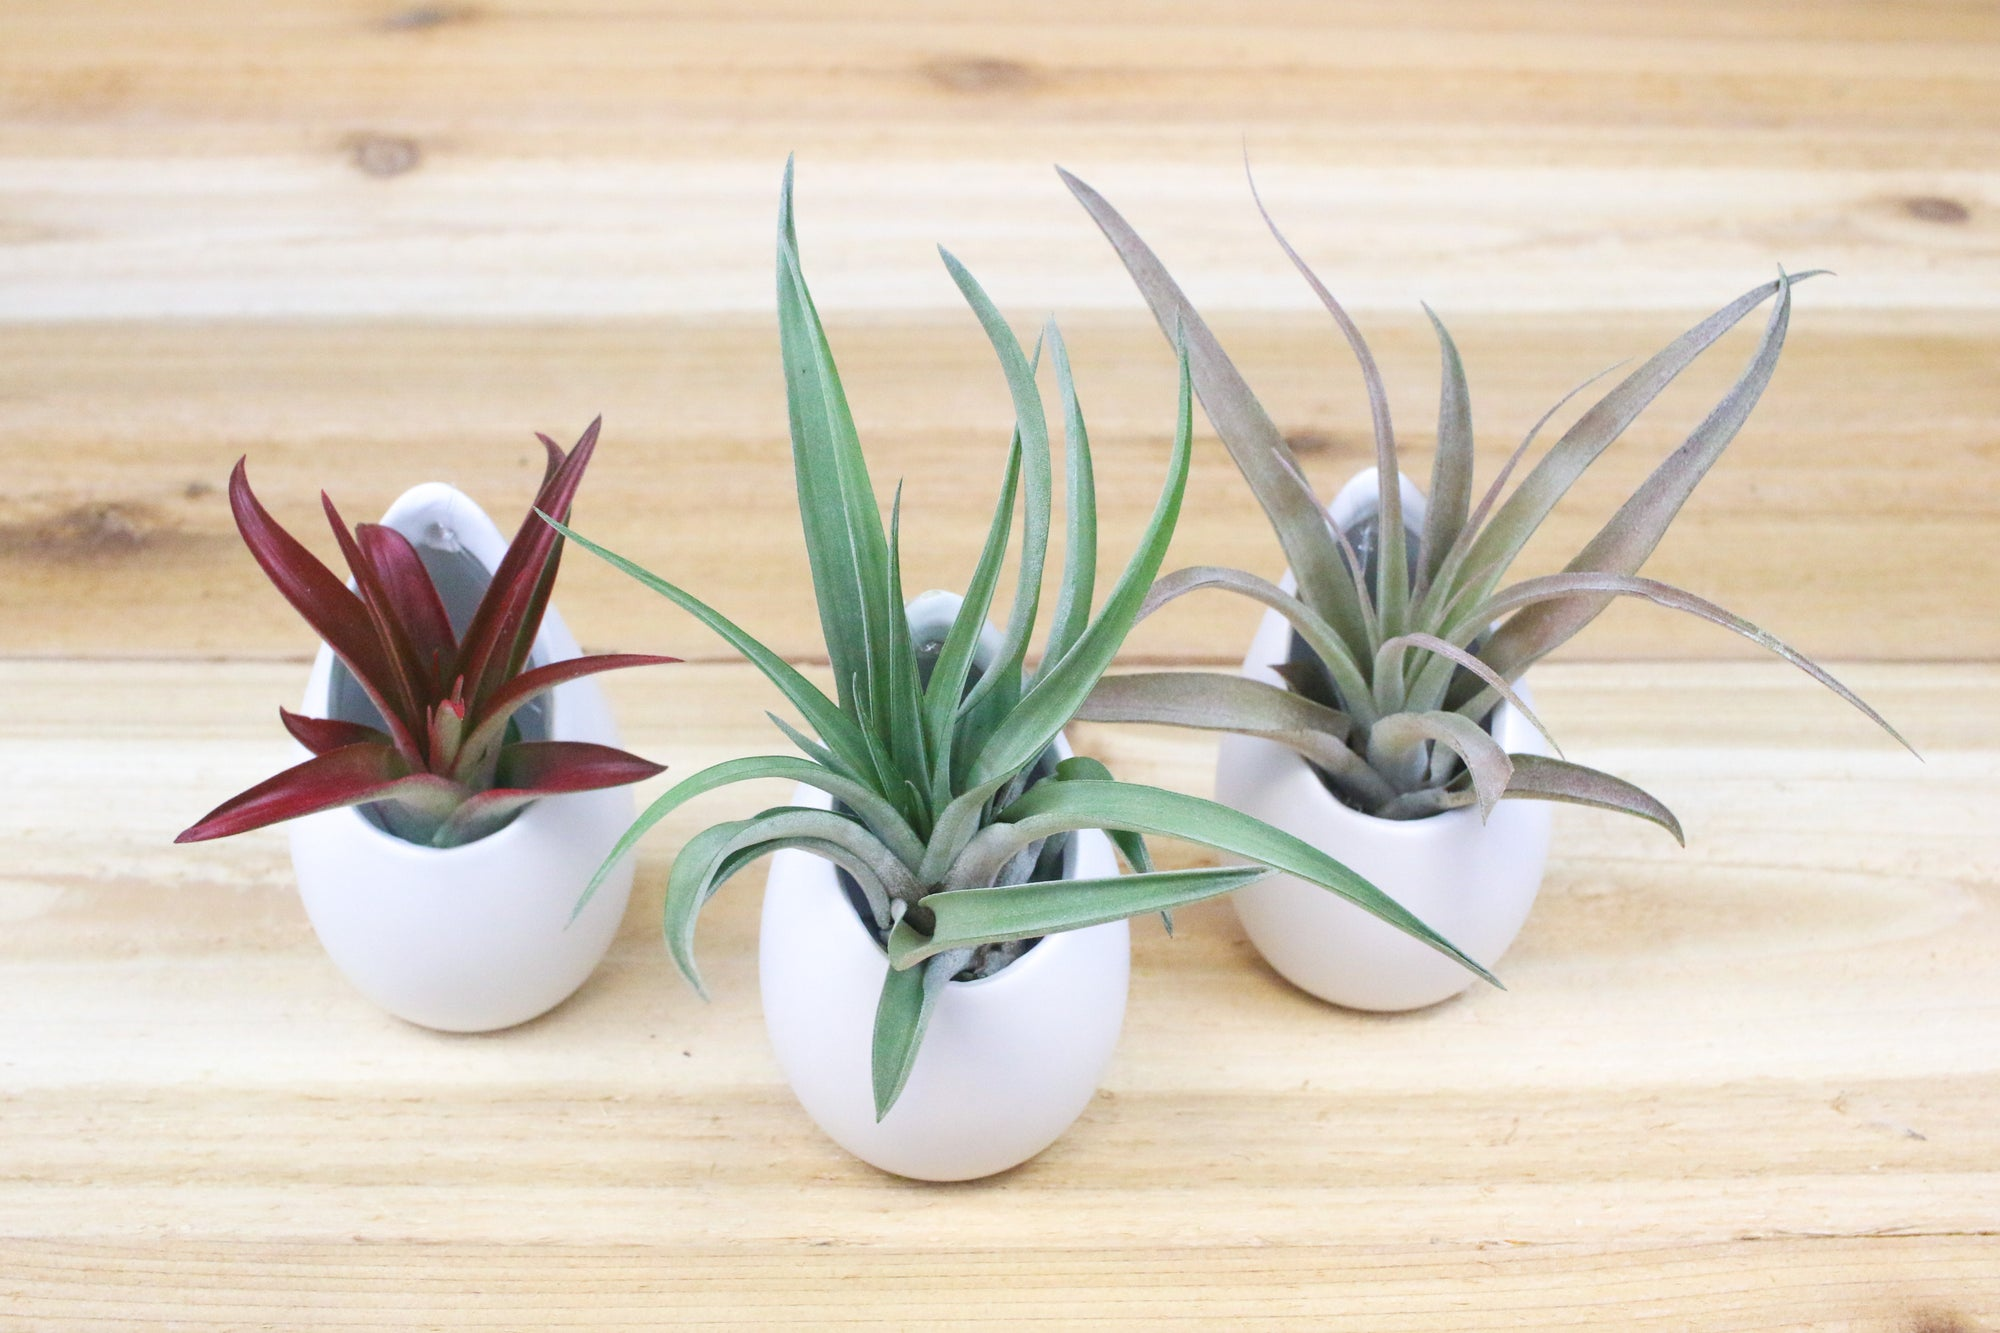 Trio of Small Hanging Ivory Ceramic Container with Air Plants from AirPlantShop.com